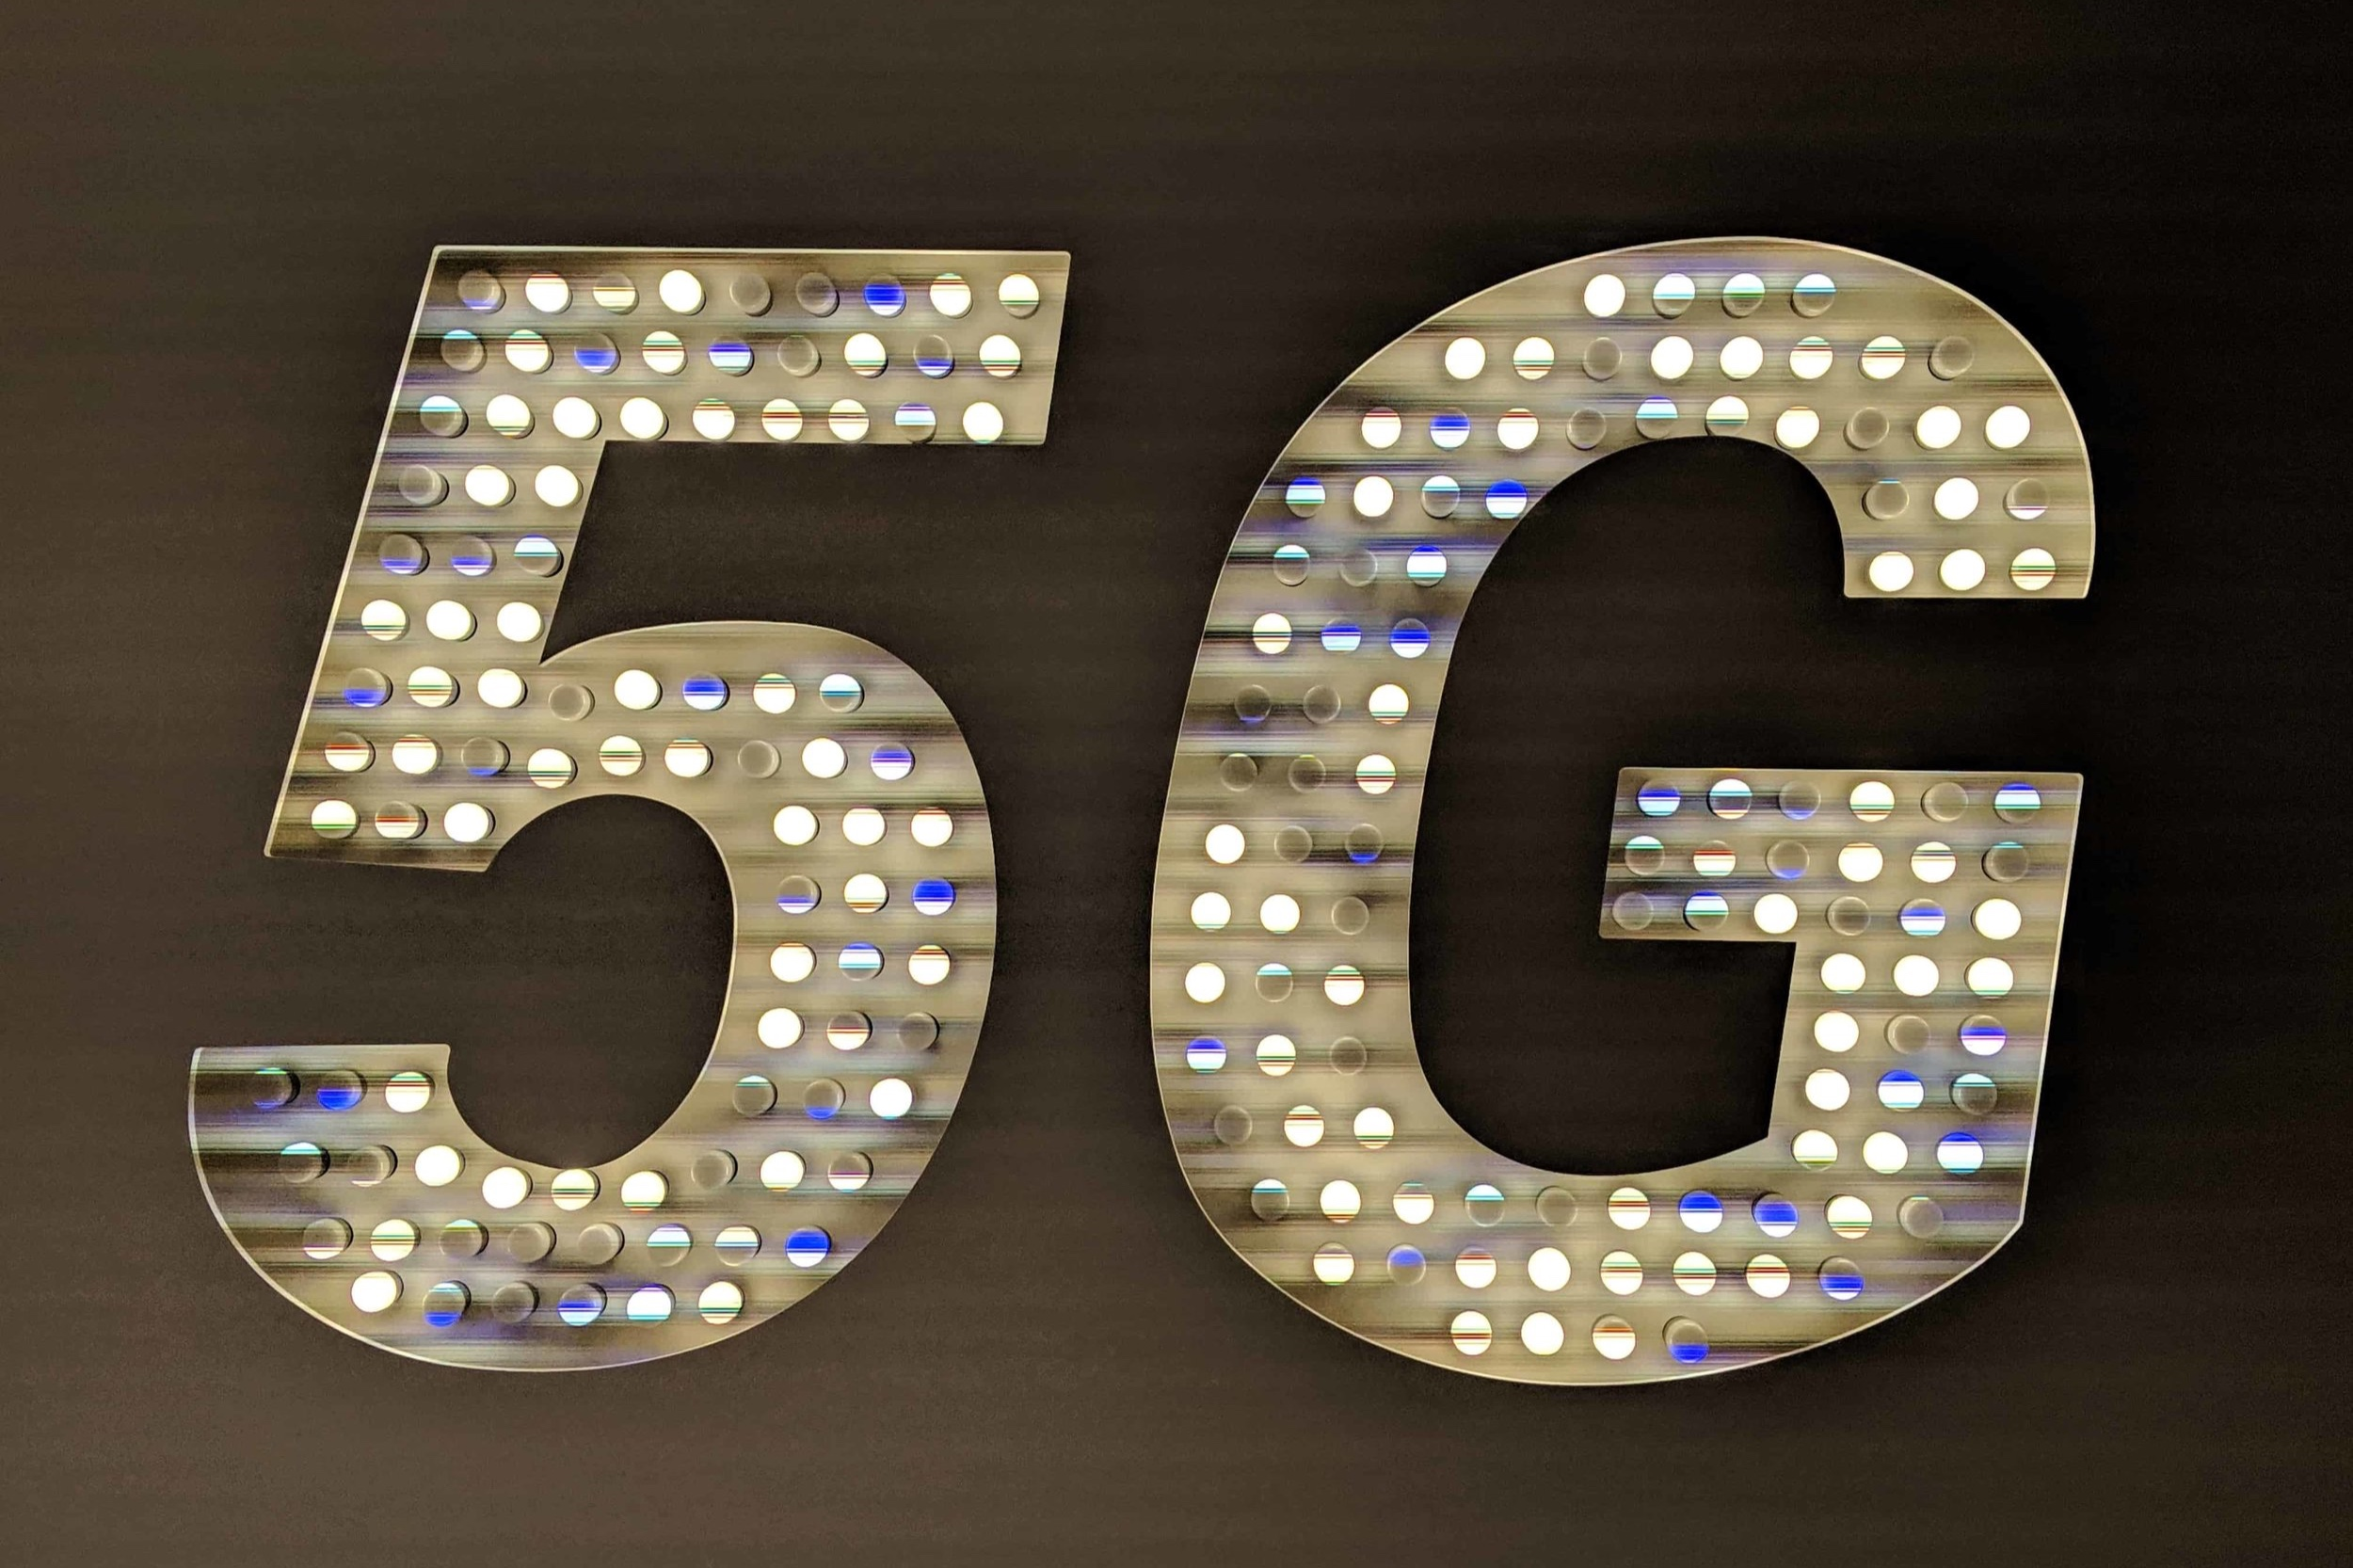 5G has started to become reality